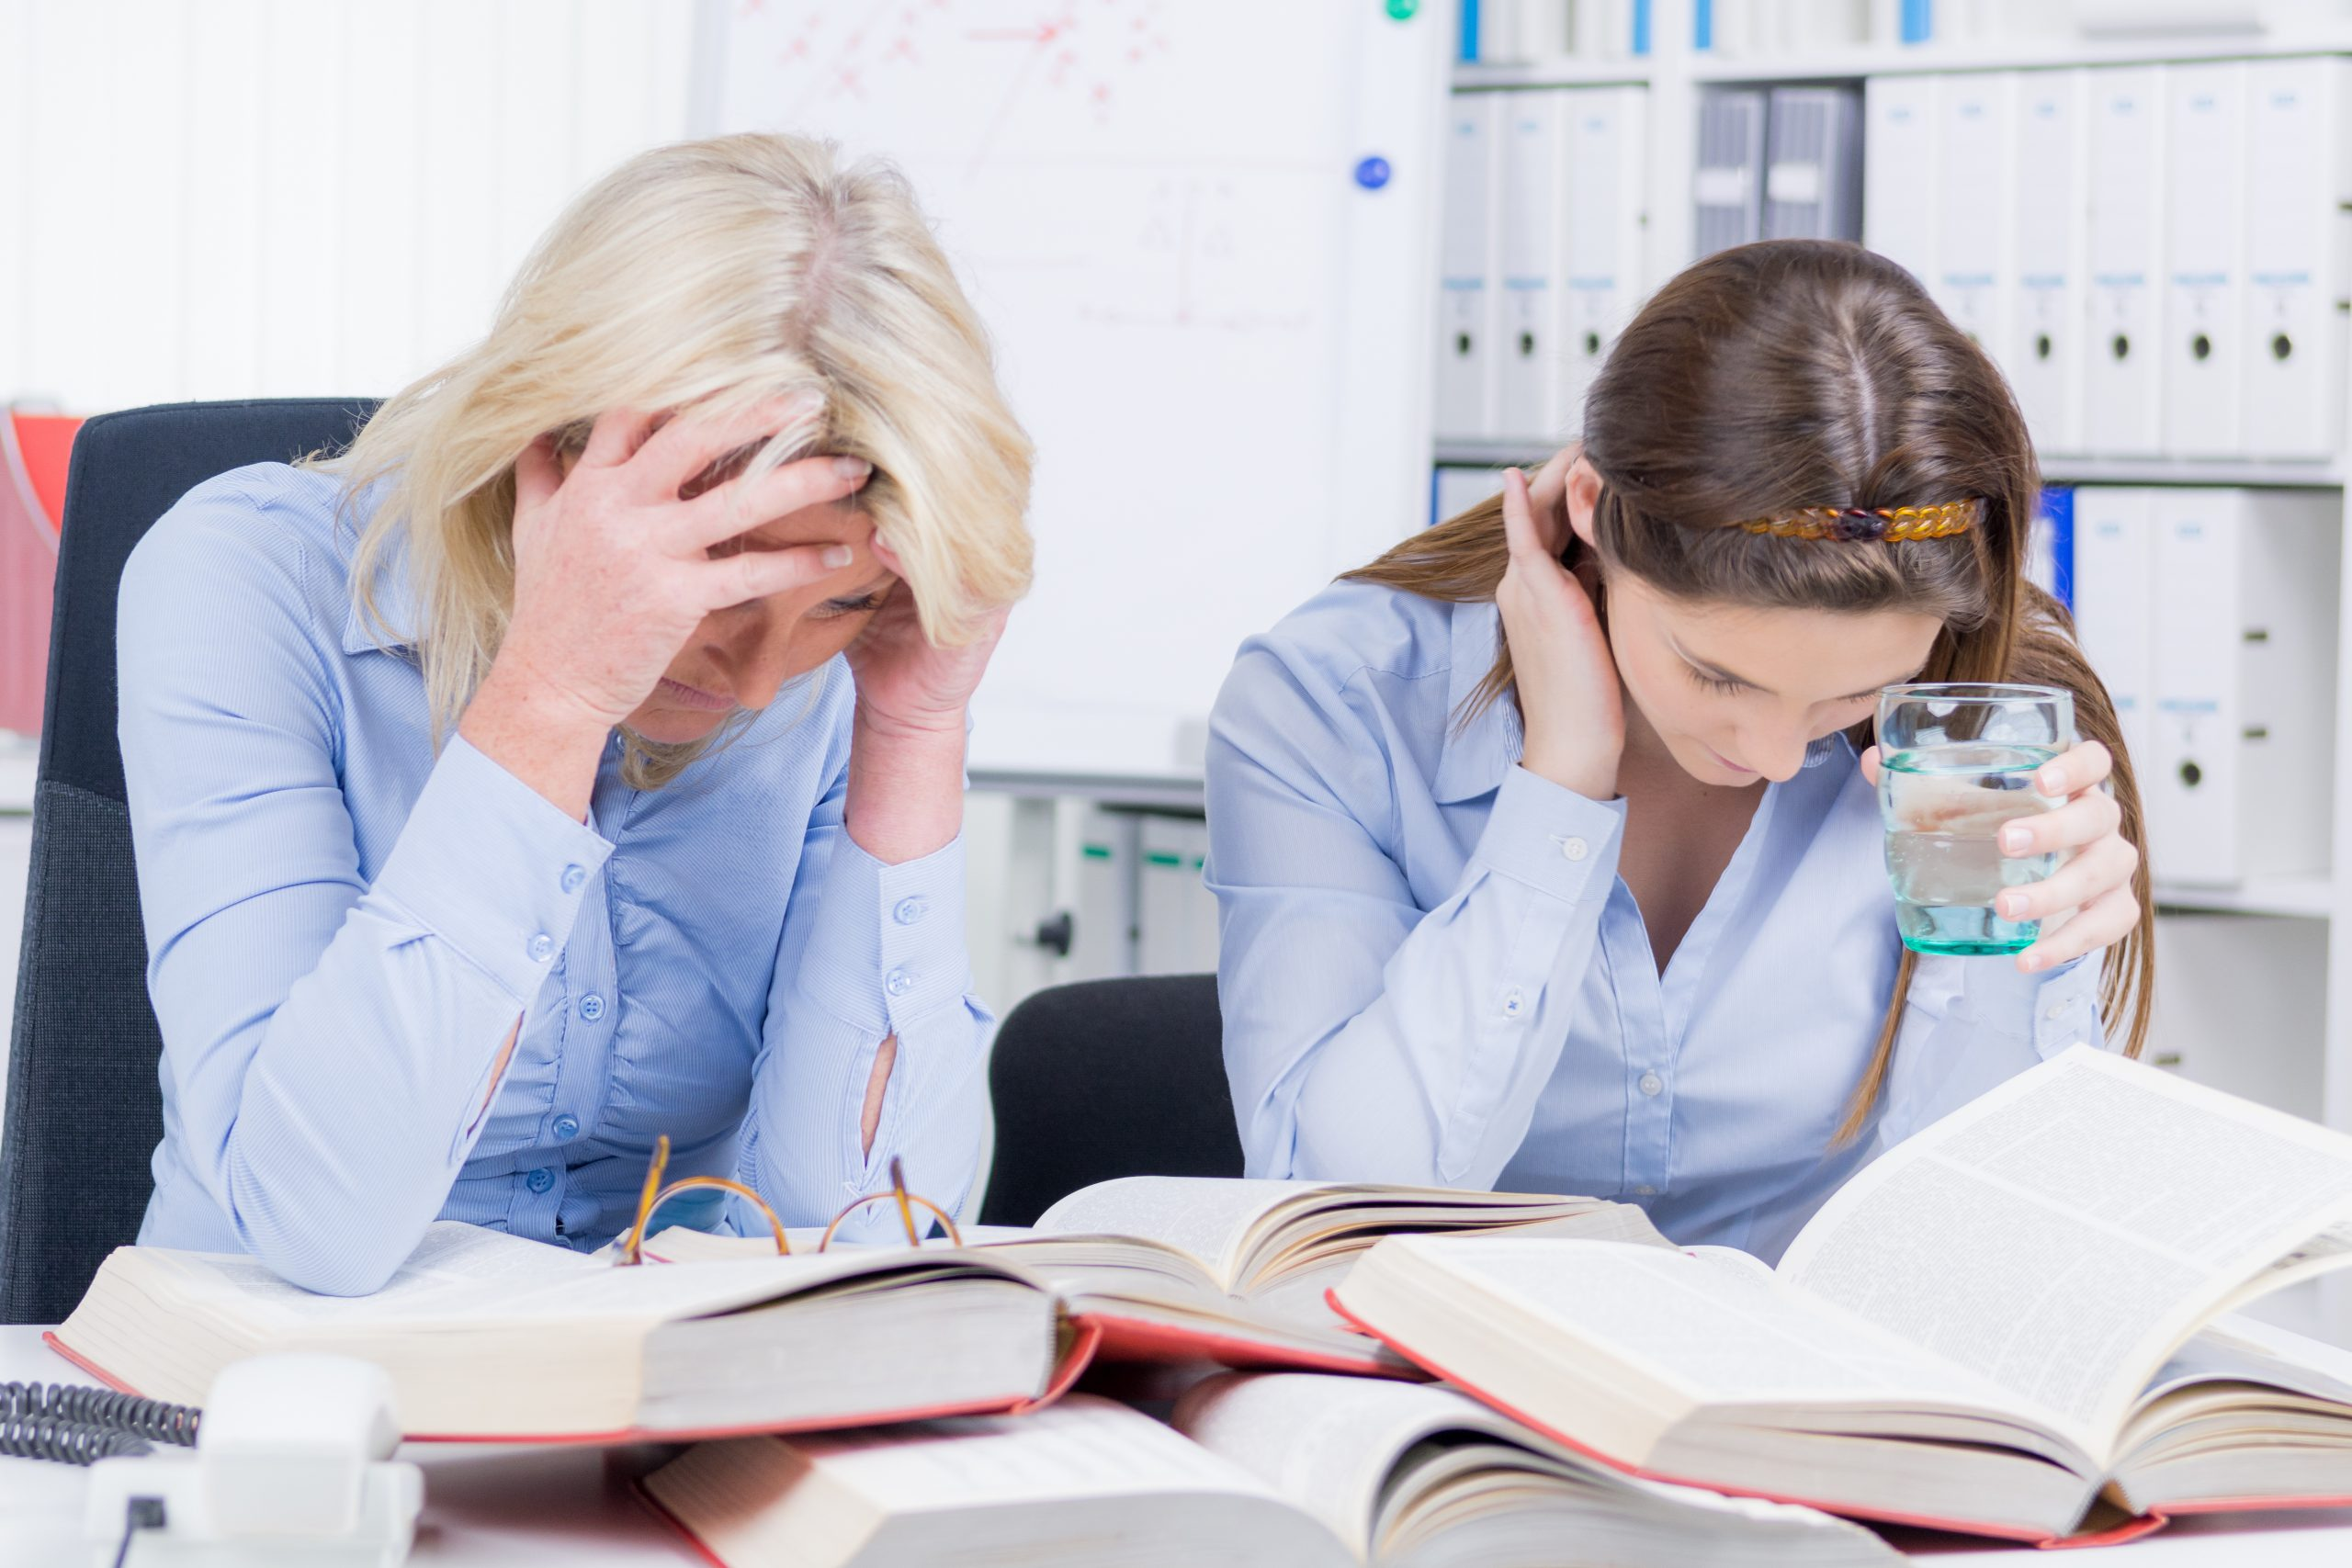 studying to become better quality lawyers instead of lowering the bar